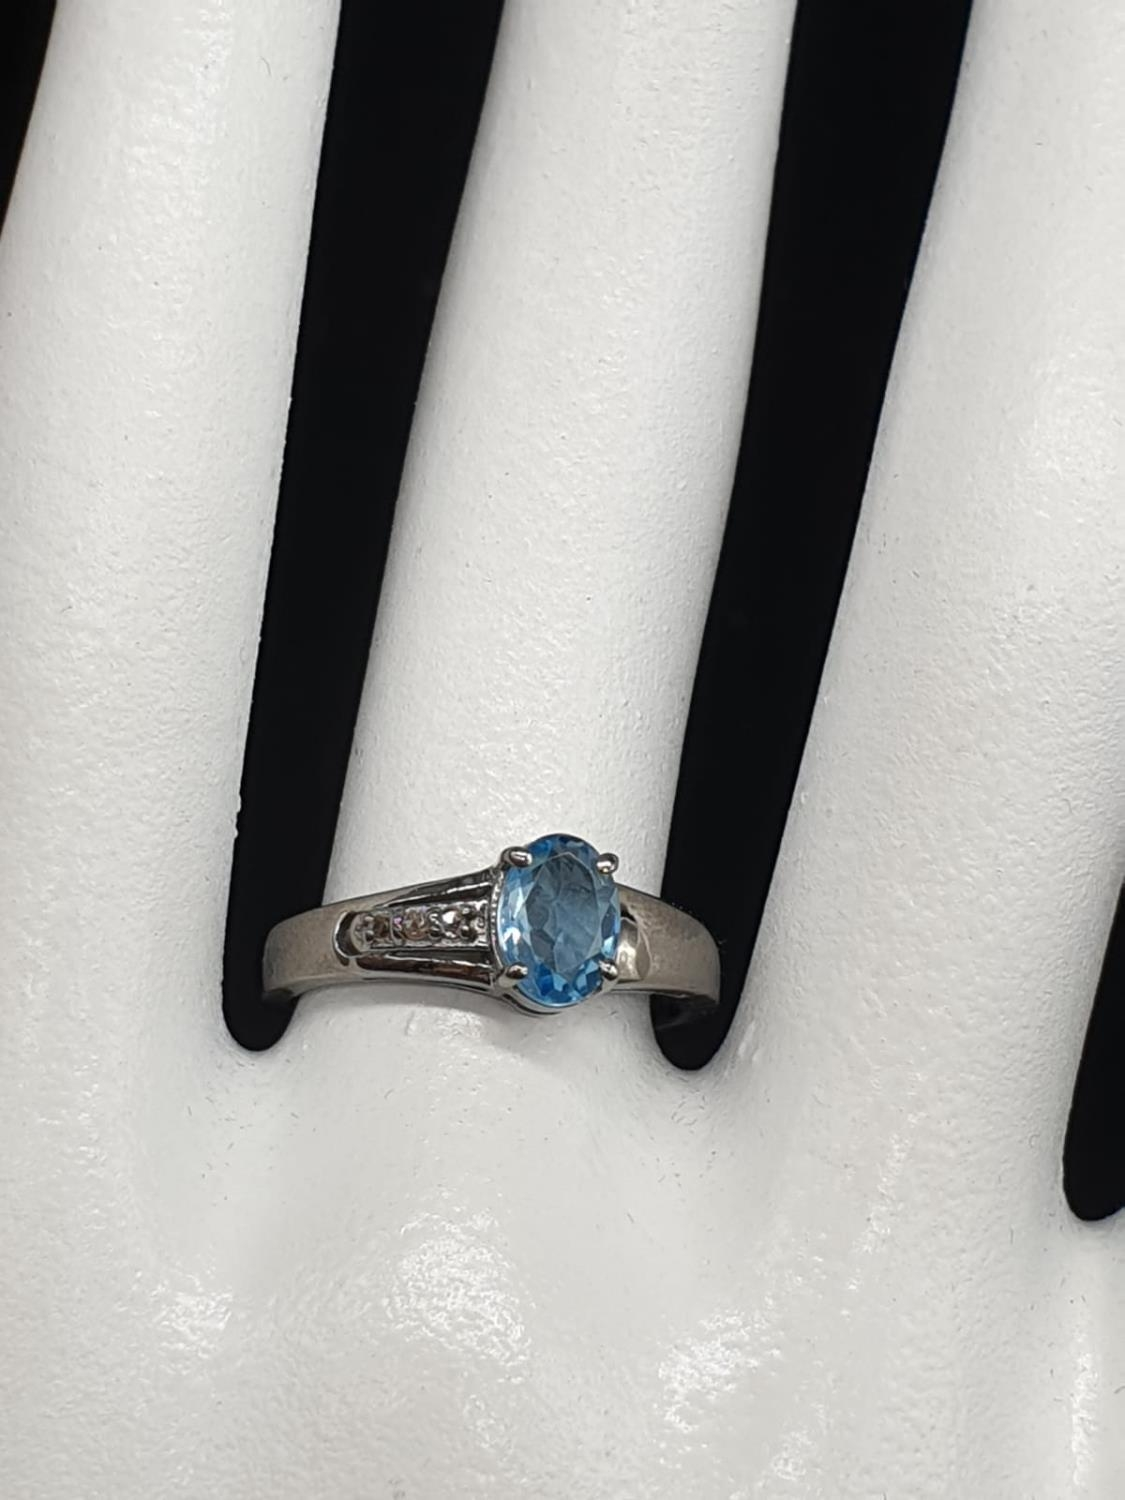 0.86 Ct Blue topaz stone inset a blackened silver ring. With 0.05 Ct rose cut diamonds, weight 2.35g - Image 7 of 7